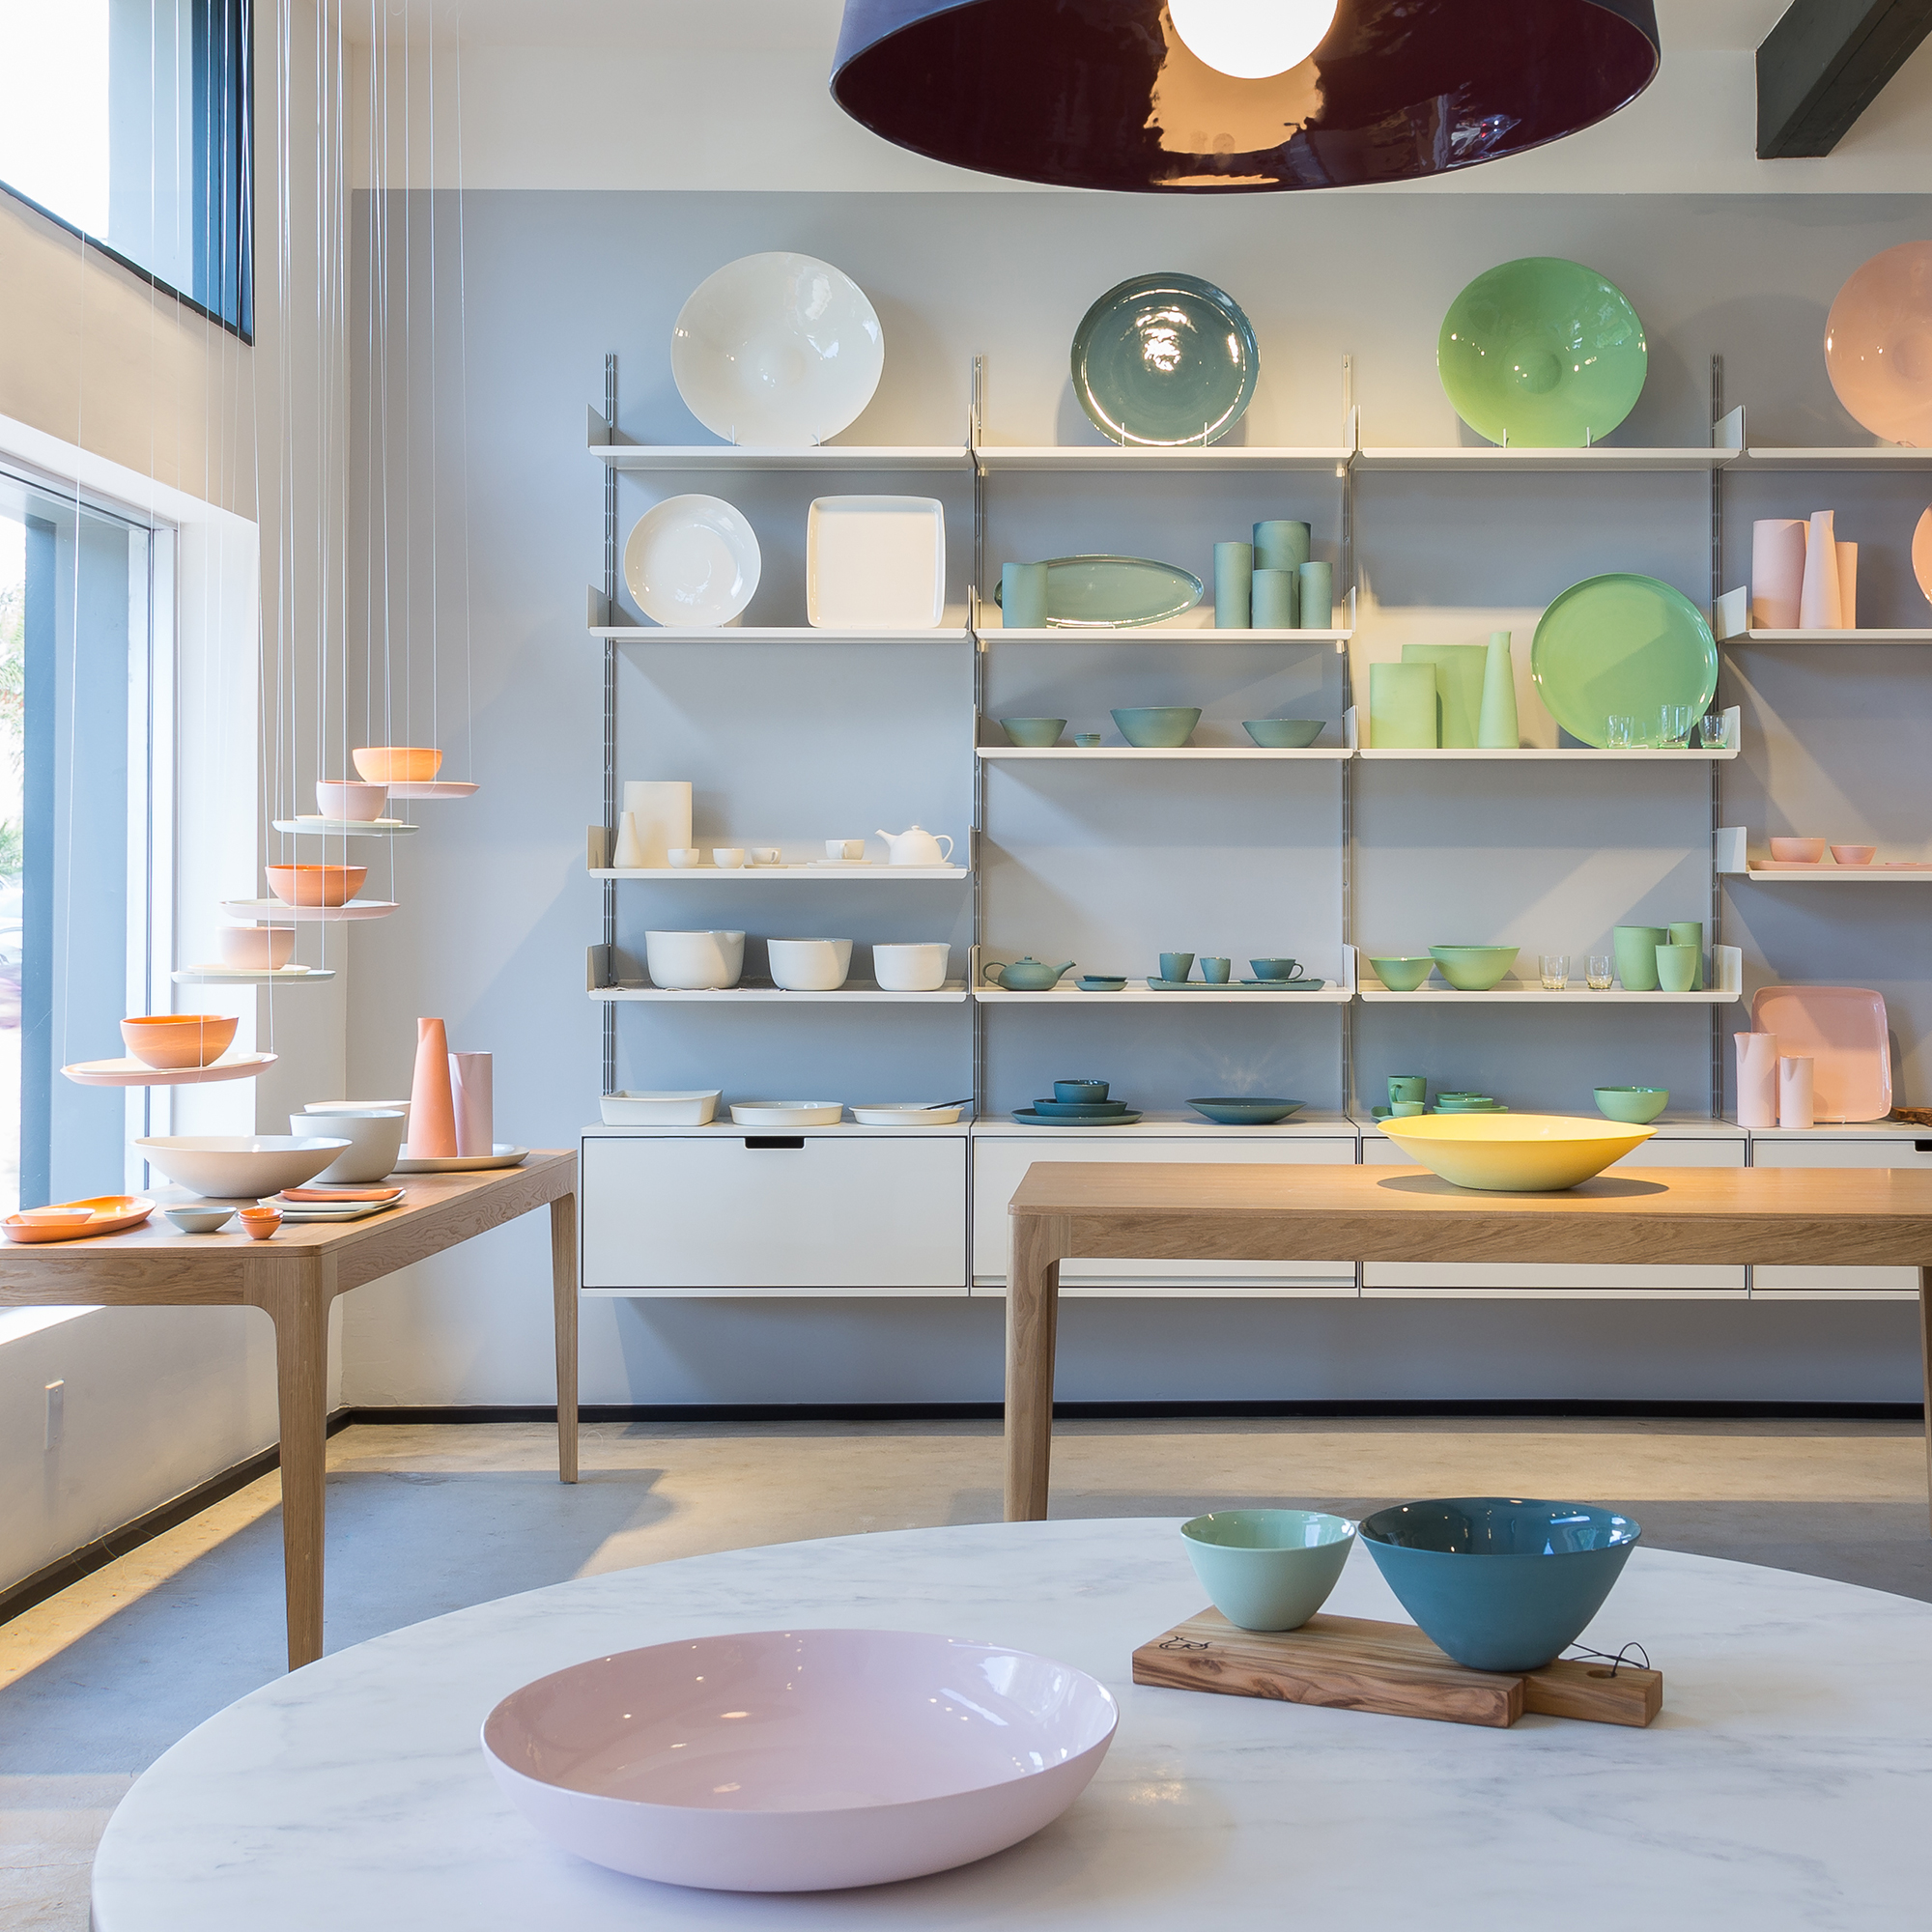 Vits and mud australia set up shop in los angeles for Kitchen showrooms sydney west